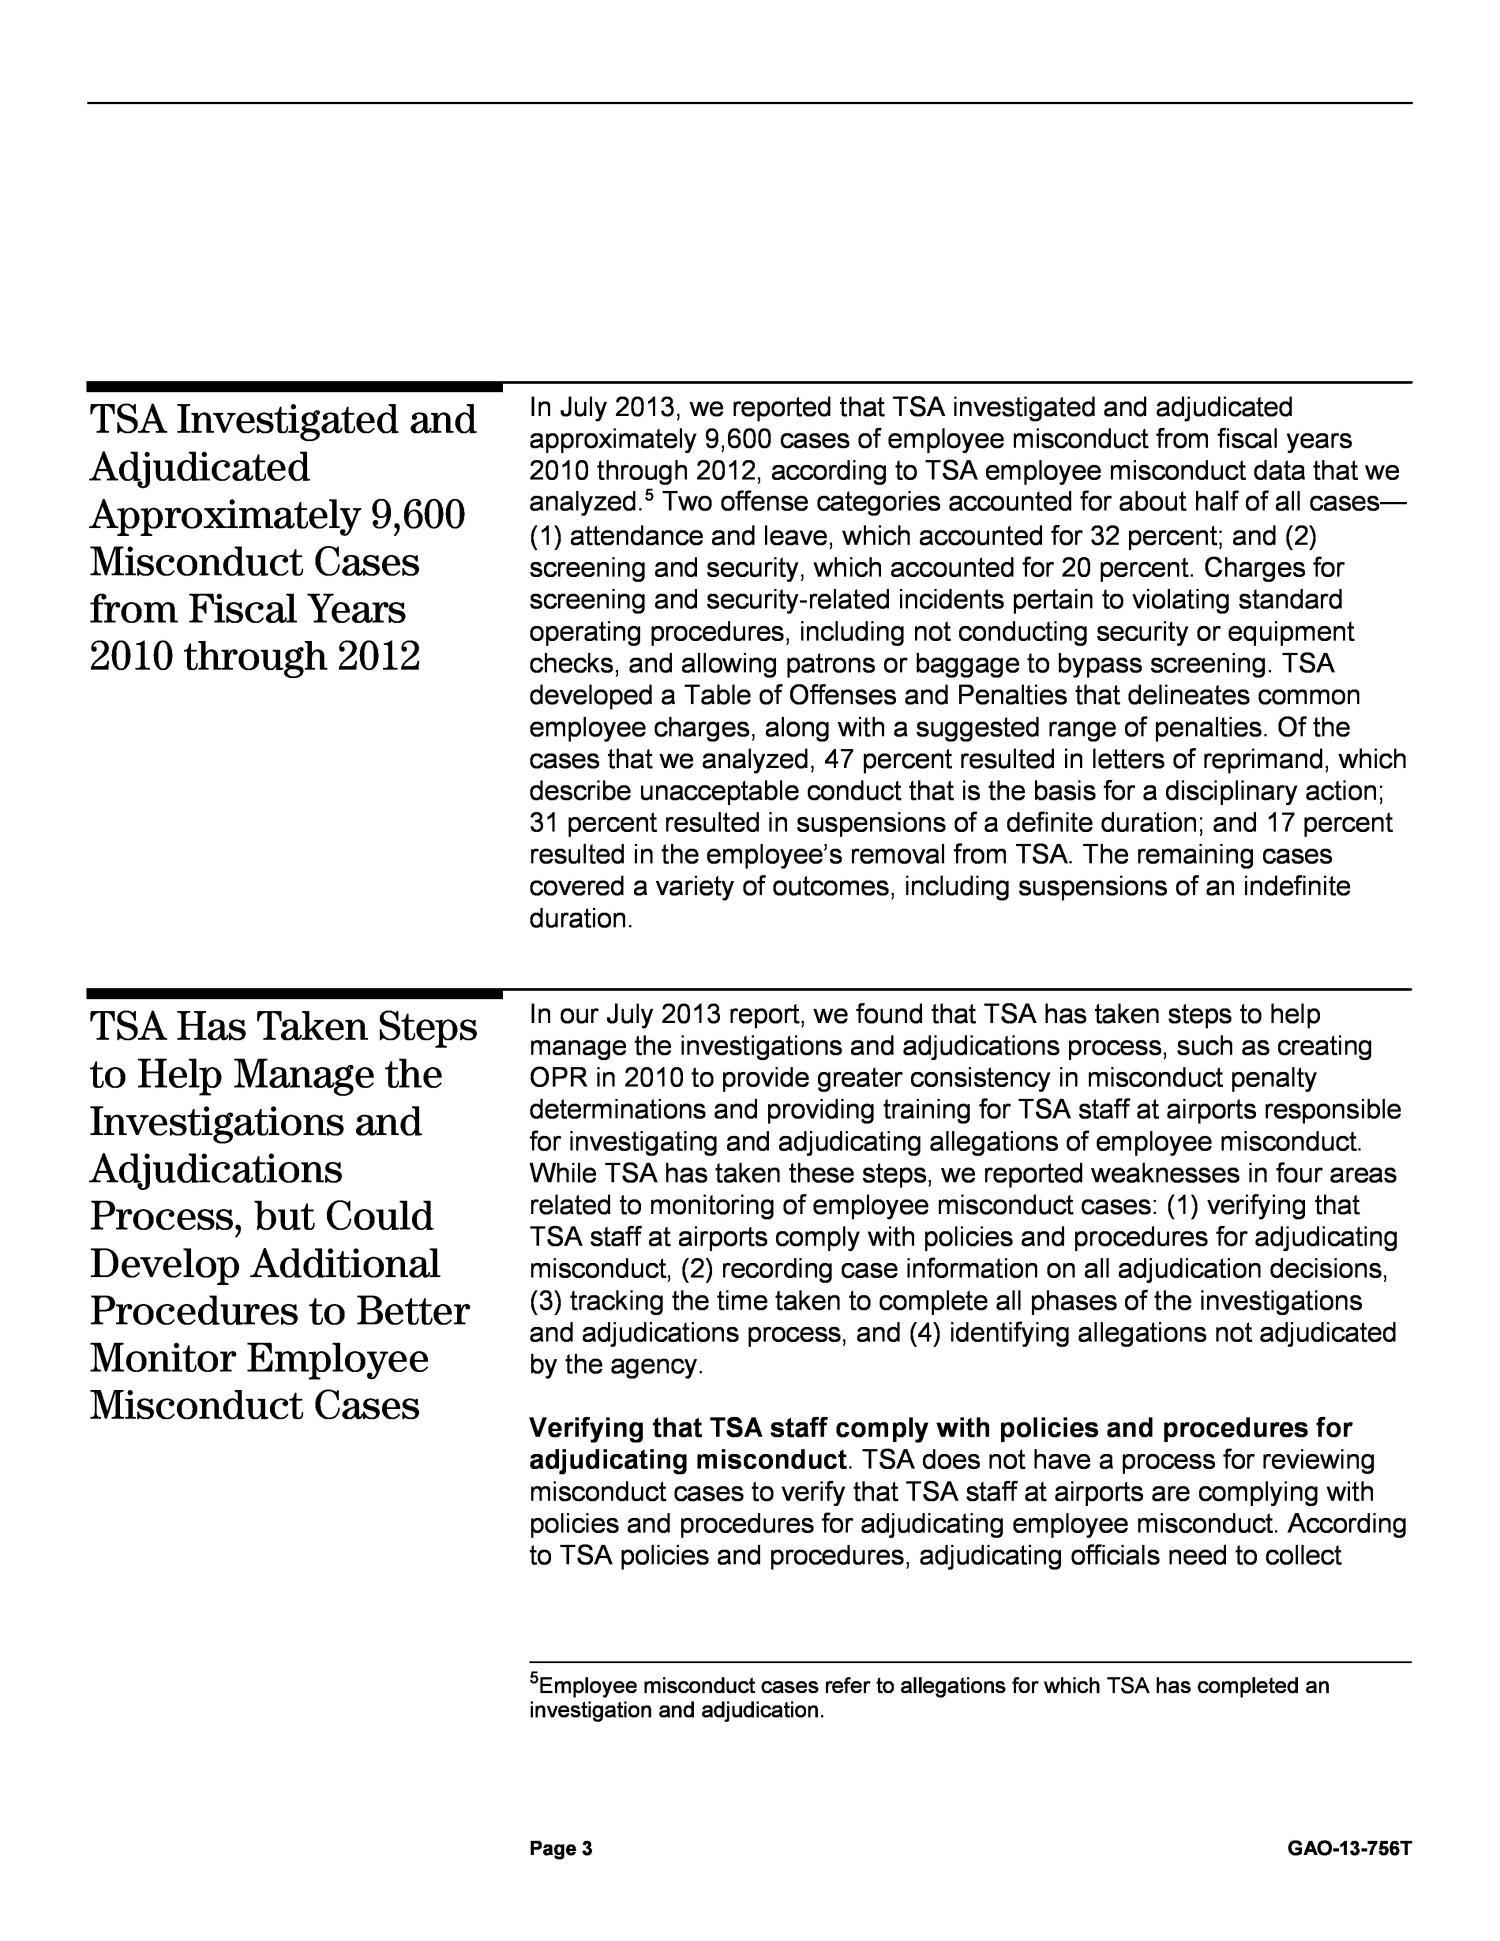 Transportation Security: TSA Could Strengthen Oversight of Allegations of Employee Misconduct                                                                                                      [Sequence #]: 4 of 9